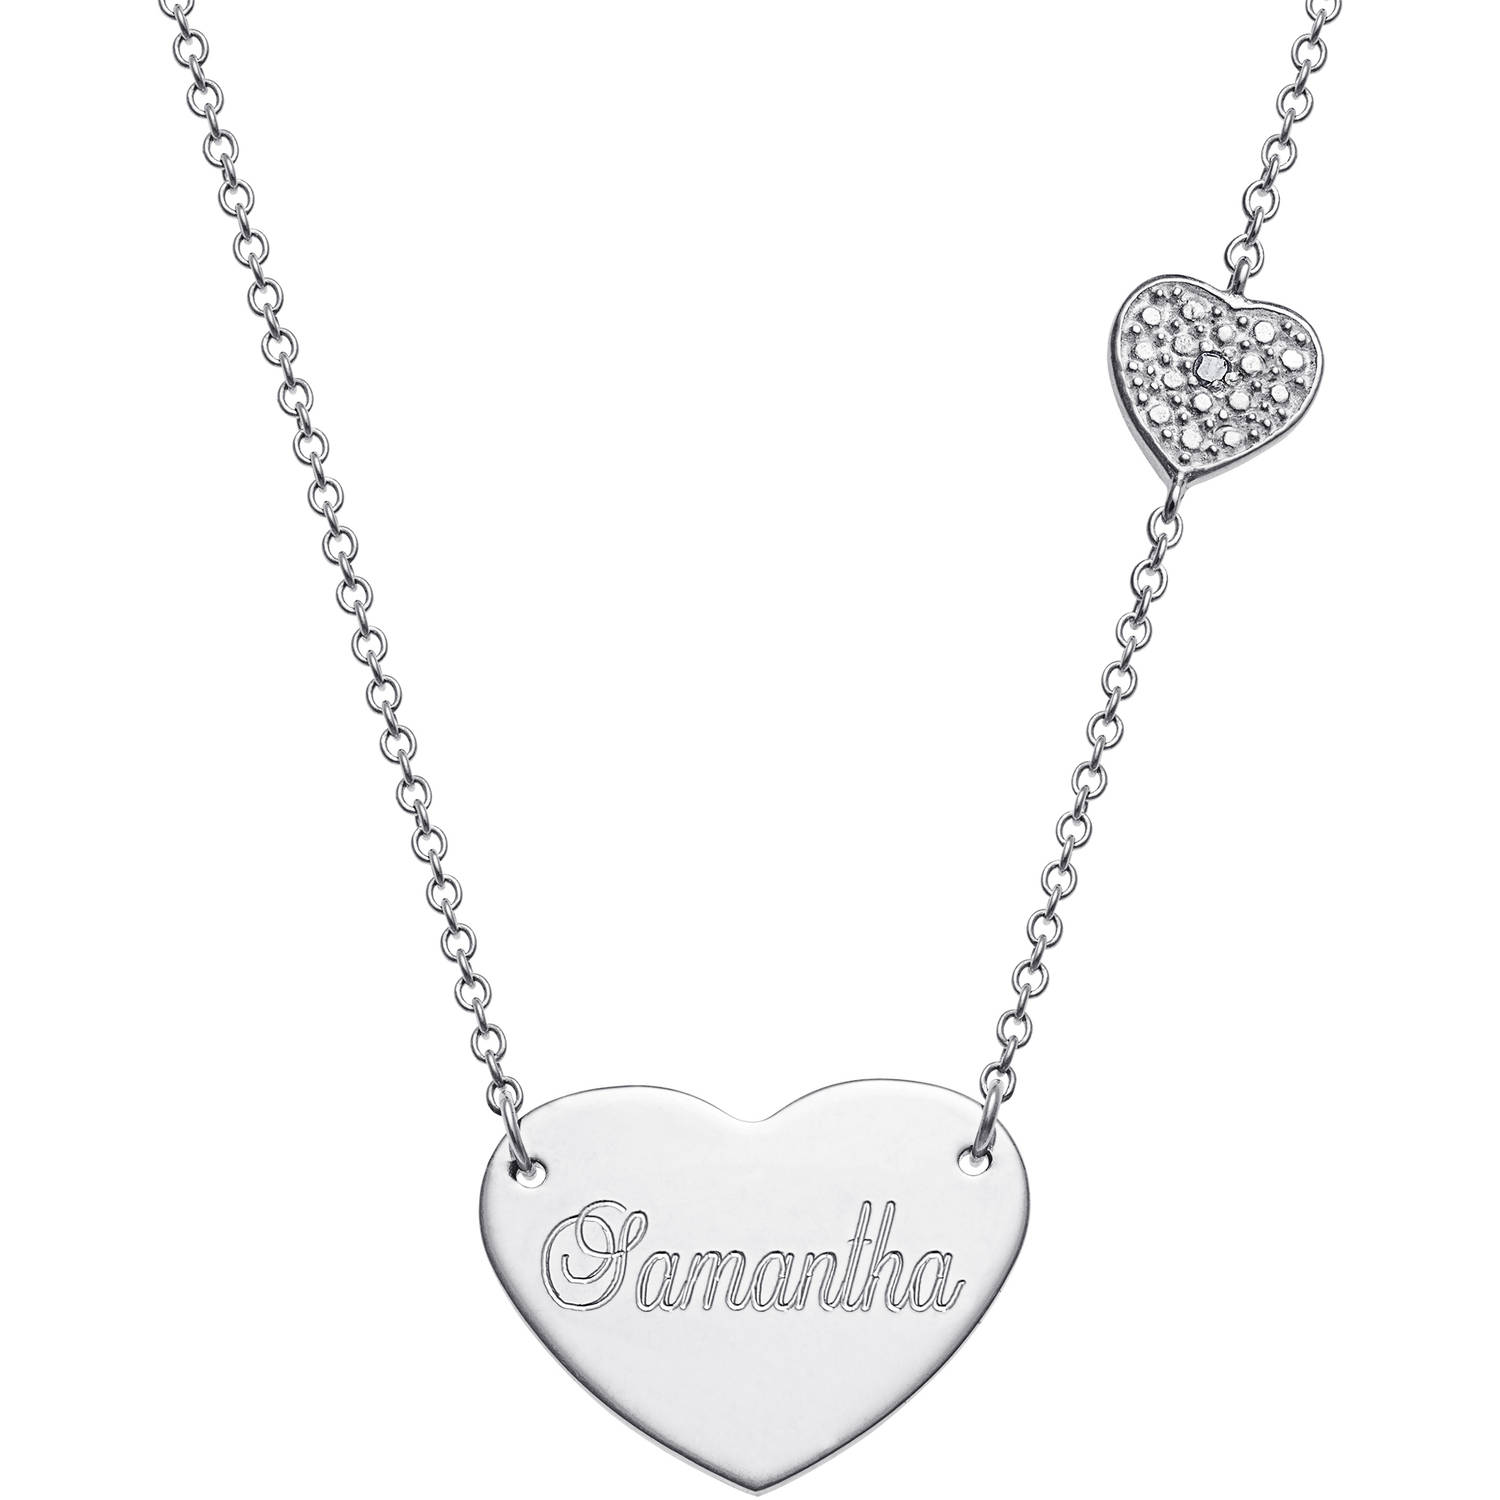 """Personalized Diamond Accent Sterling Silver Engraved Heart Necklace, 16"""" Chain with 2"""" Extender"""